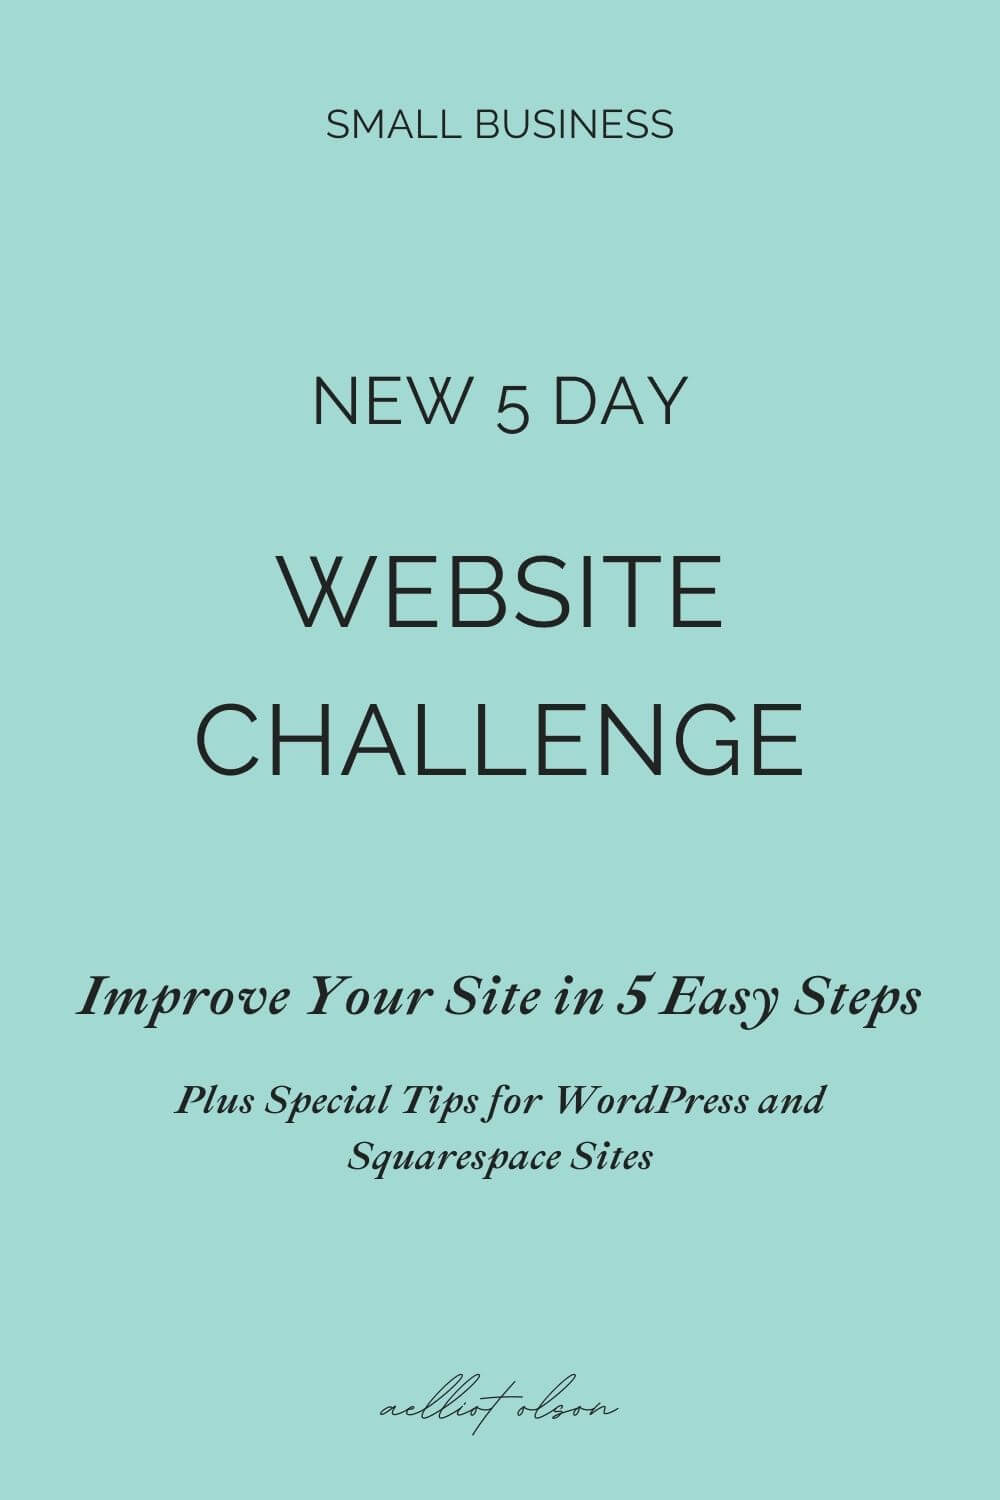 Improve website and make it work better with a 5-day challenge.